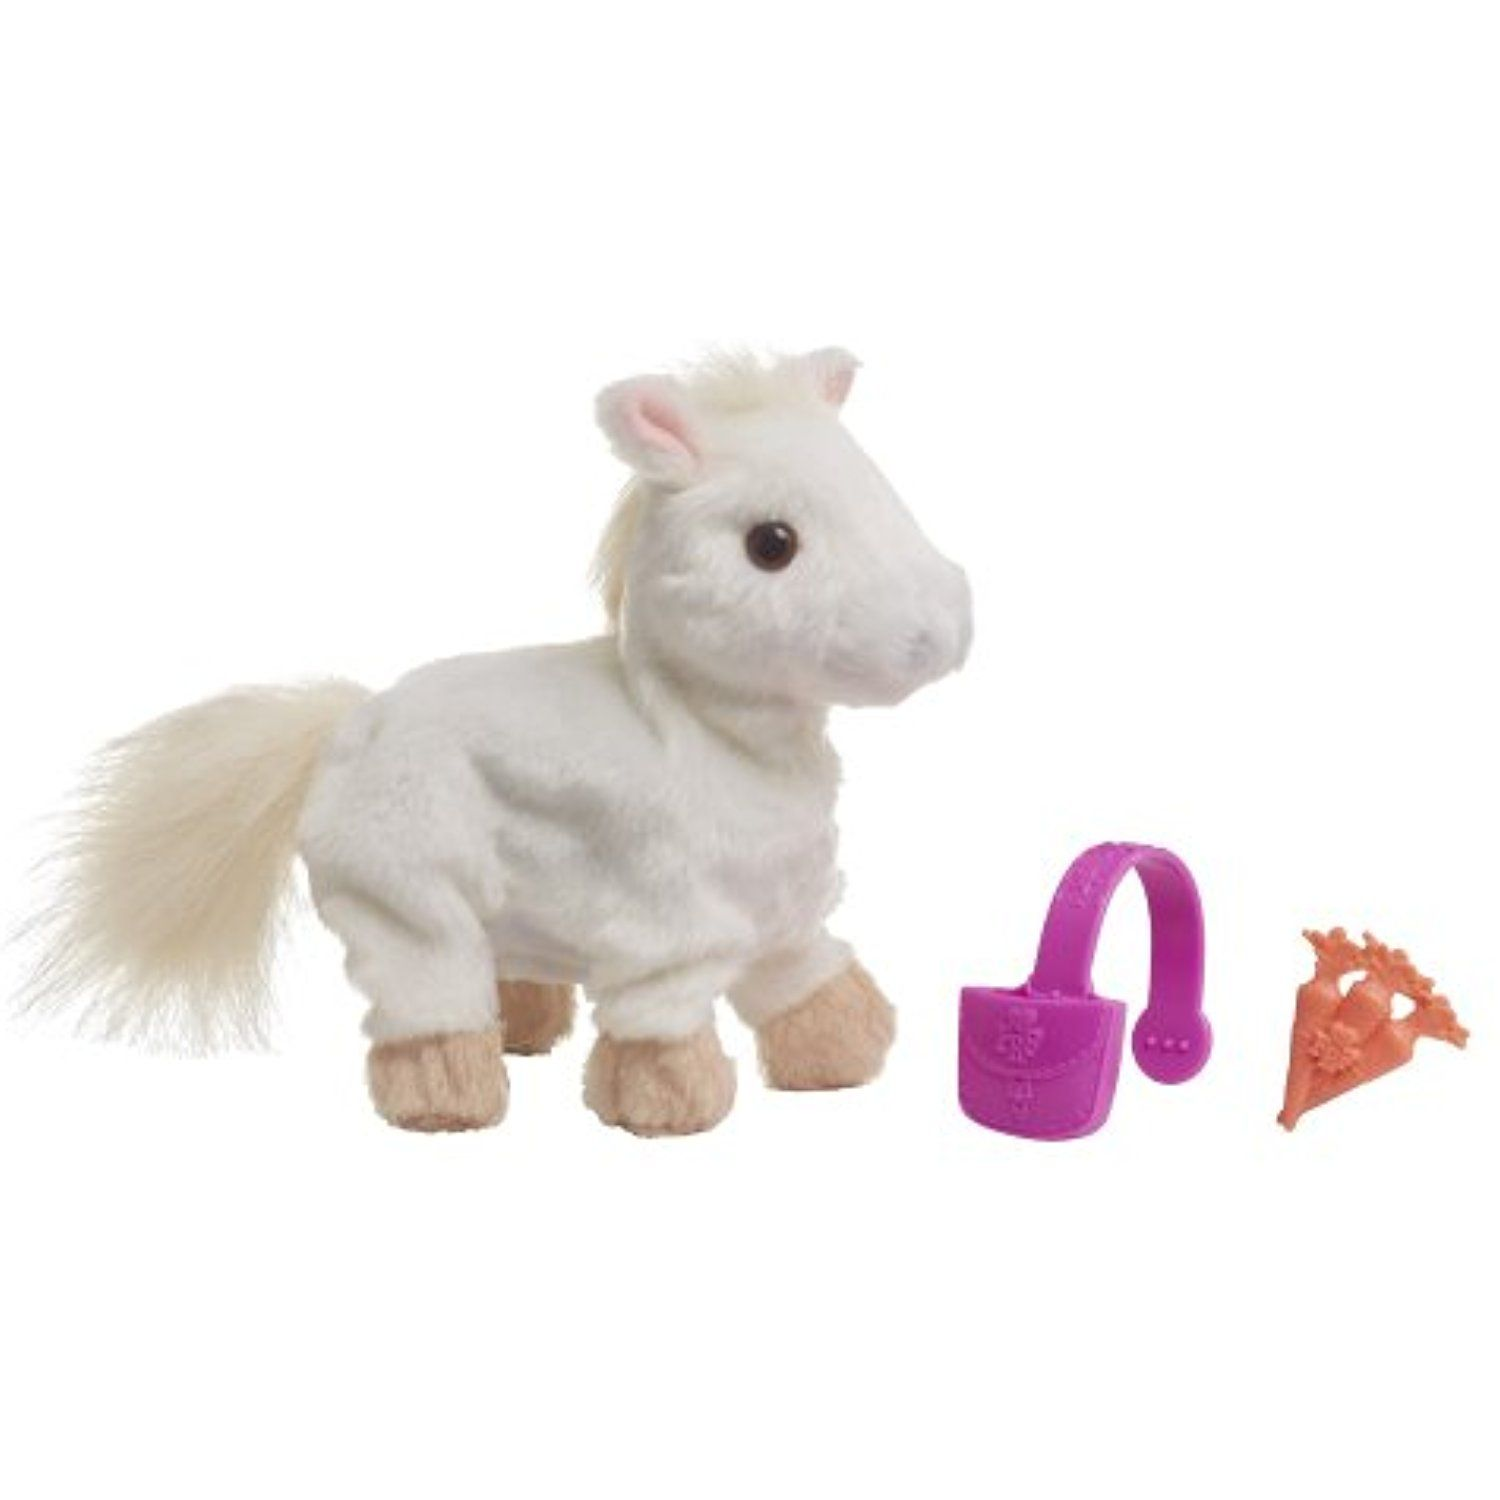 Furreal Friends Snuggimals White Pony Plush Click On The Image